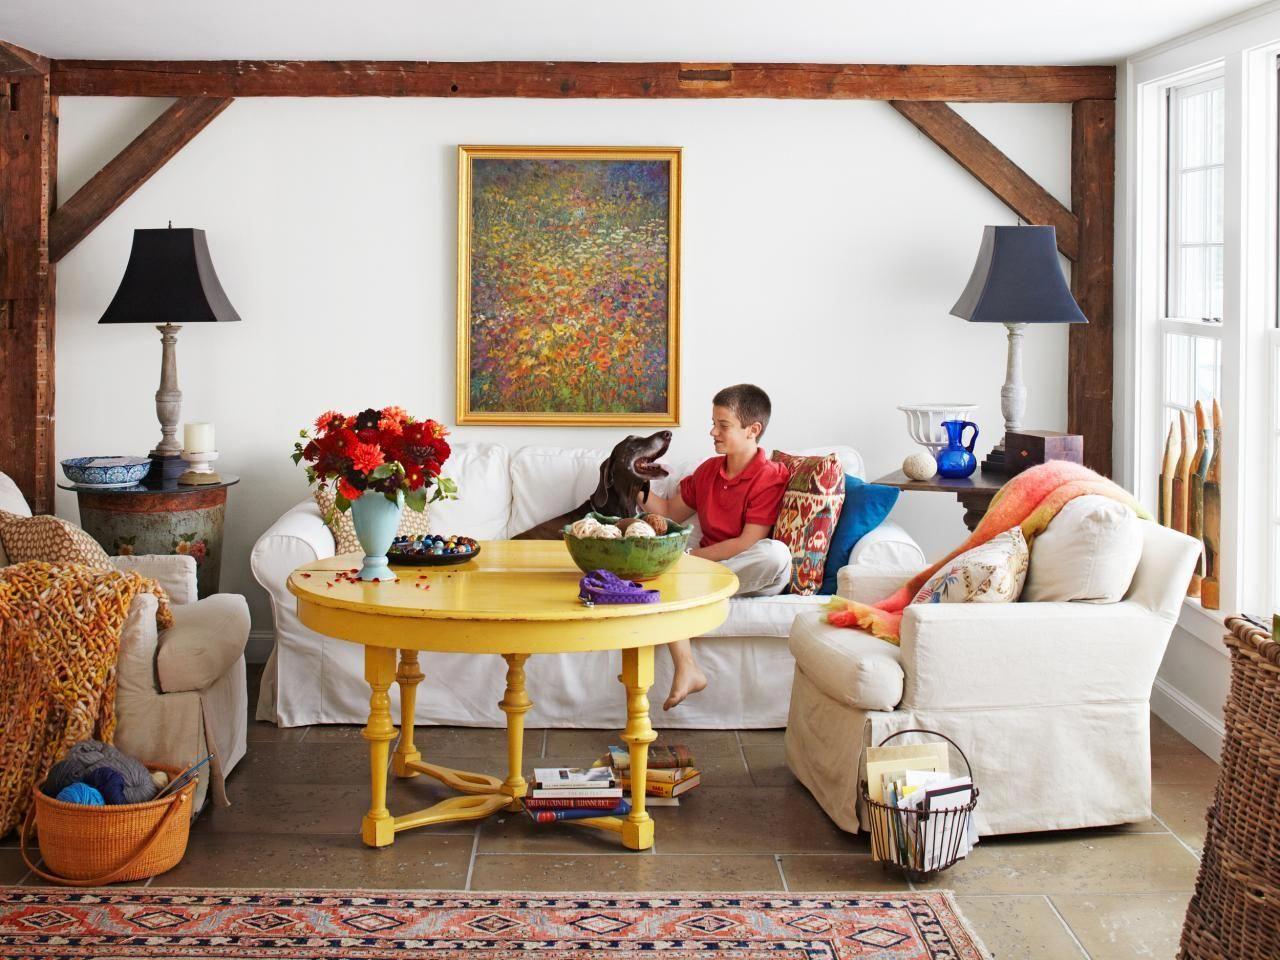 Kid friendly home decorating interior design styles and color schemes for hgtv also rh pinterest